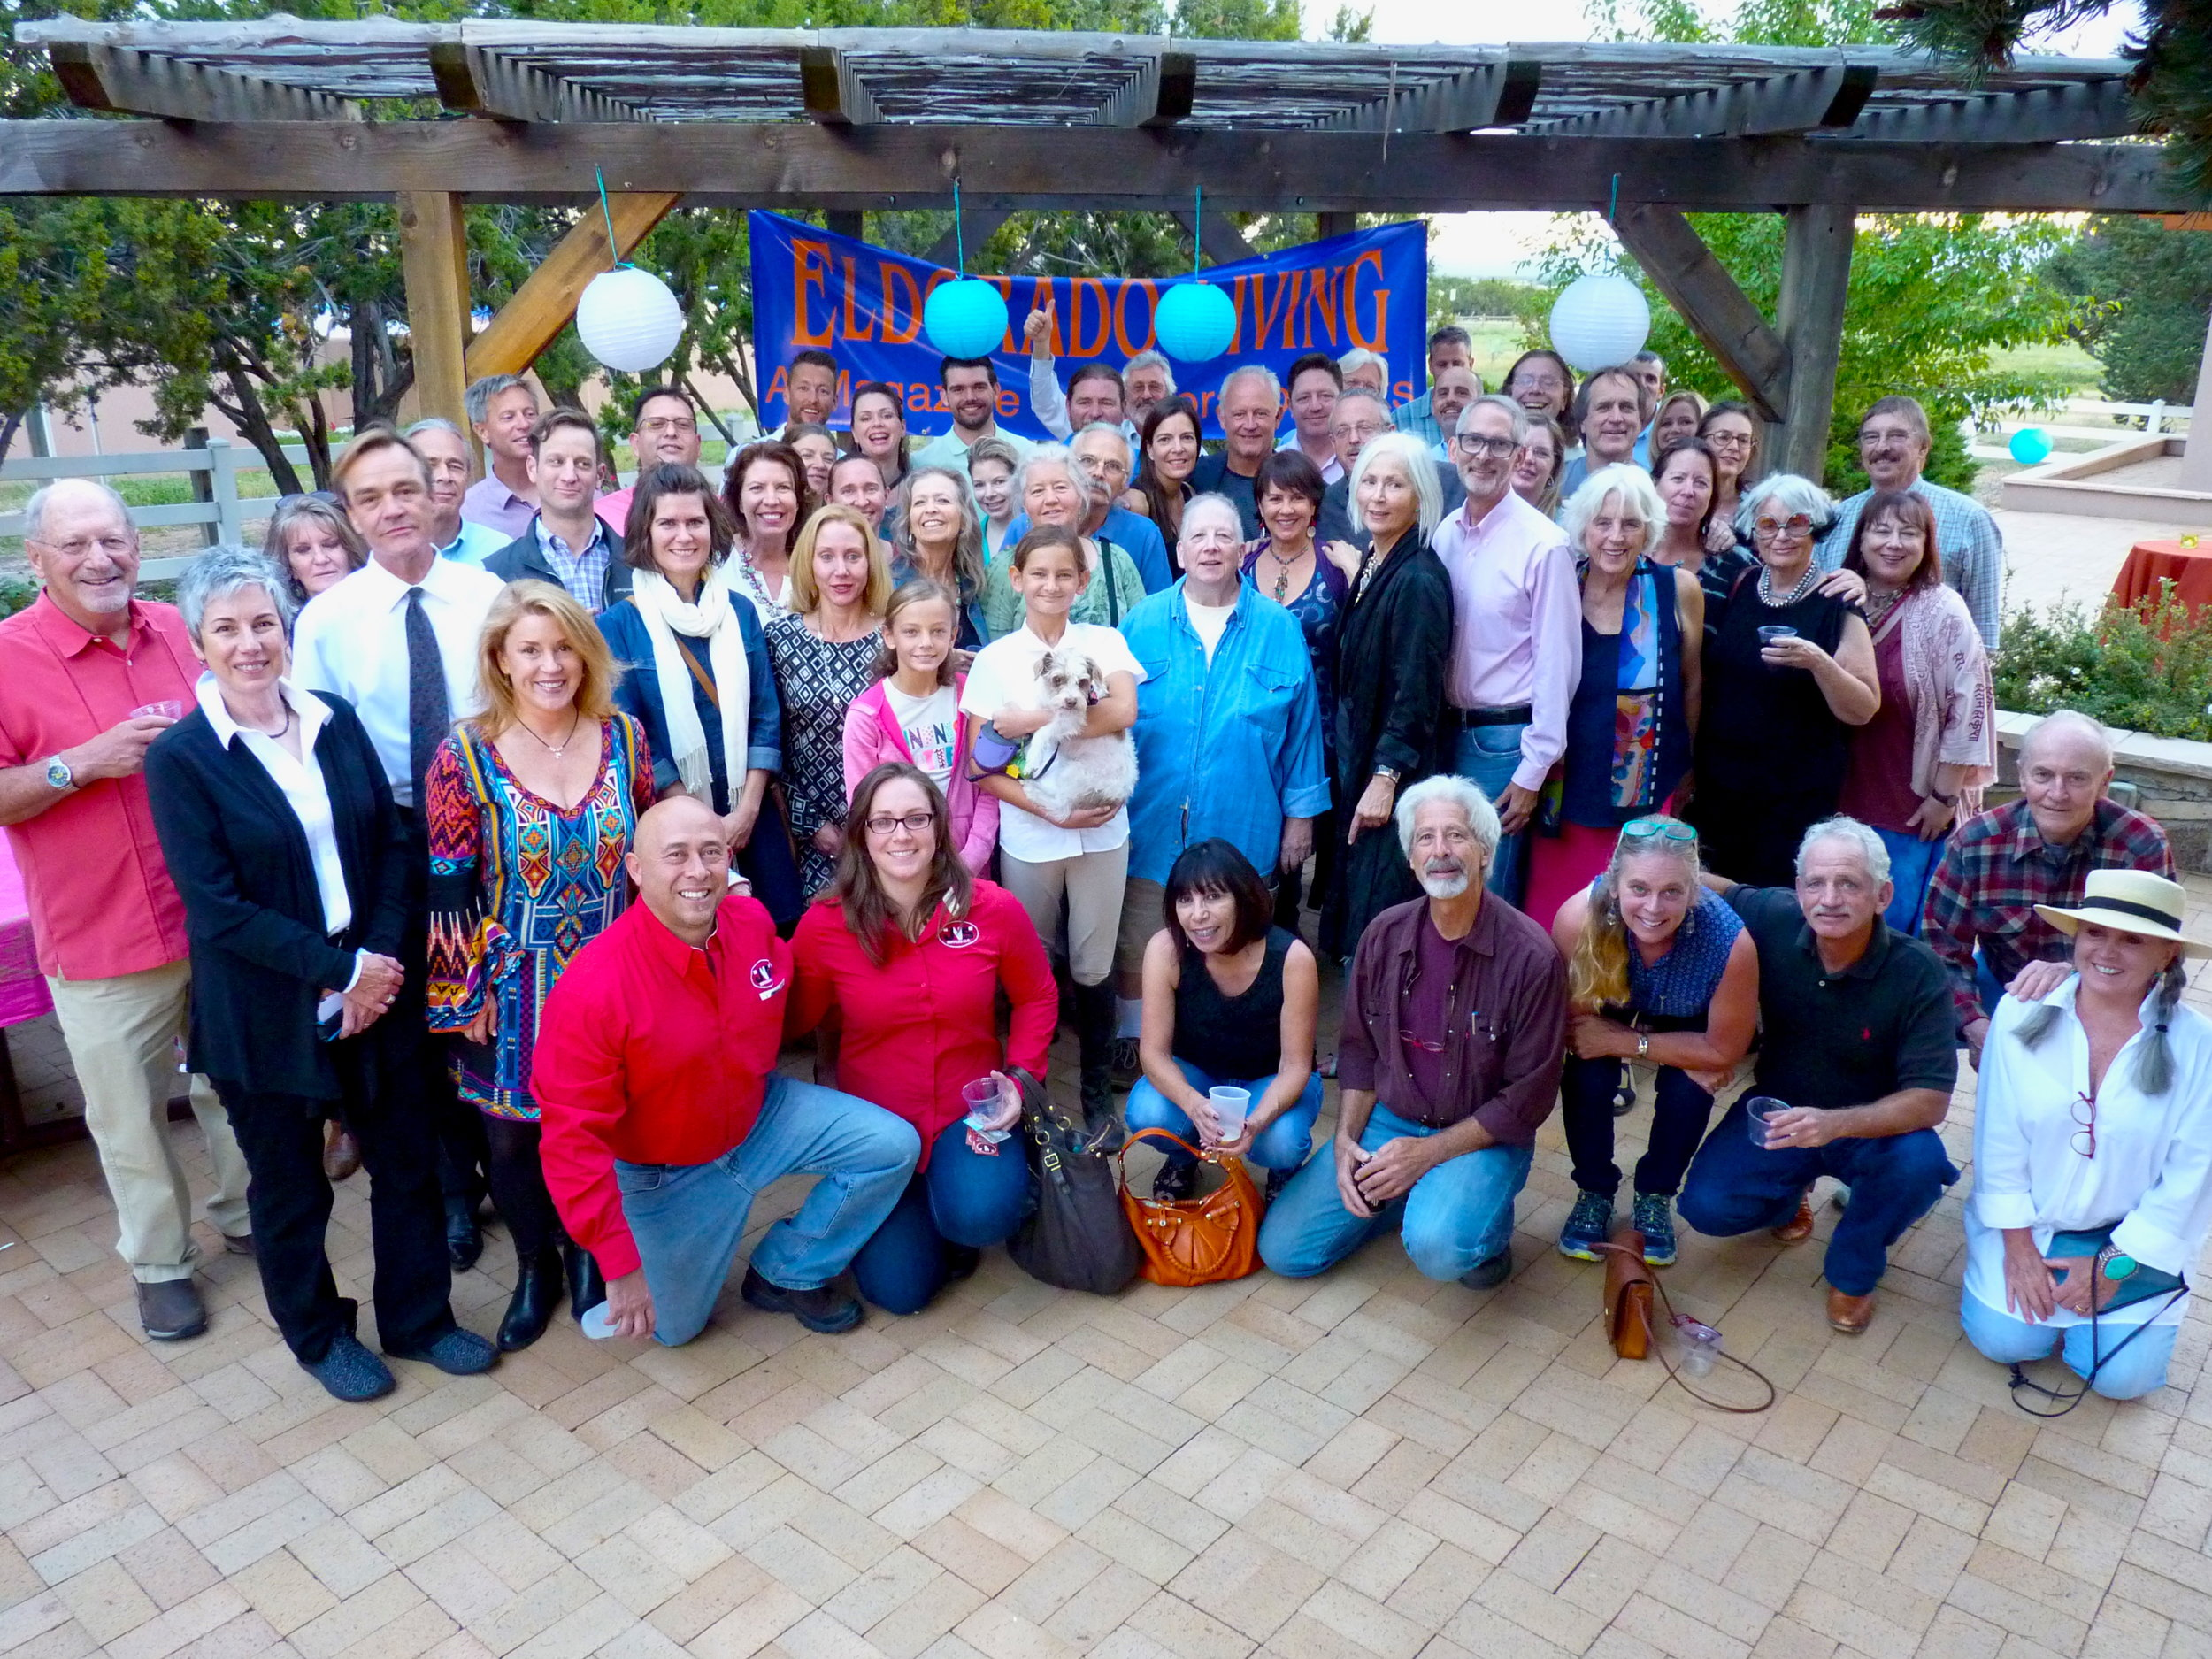 Eldorado Living's Launch Party, September 2016, brought together residents and advertisers to celebrate!